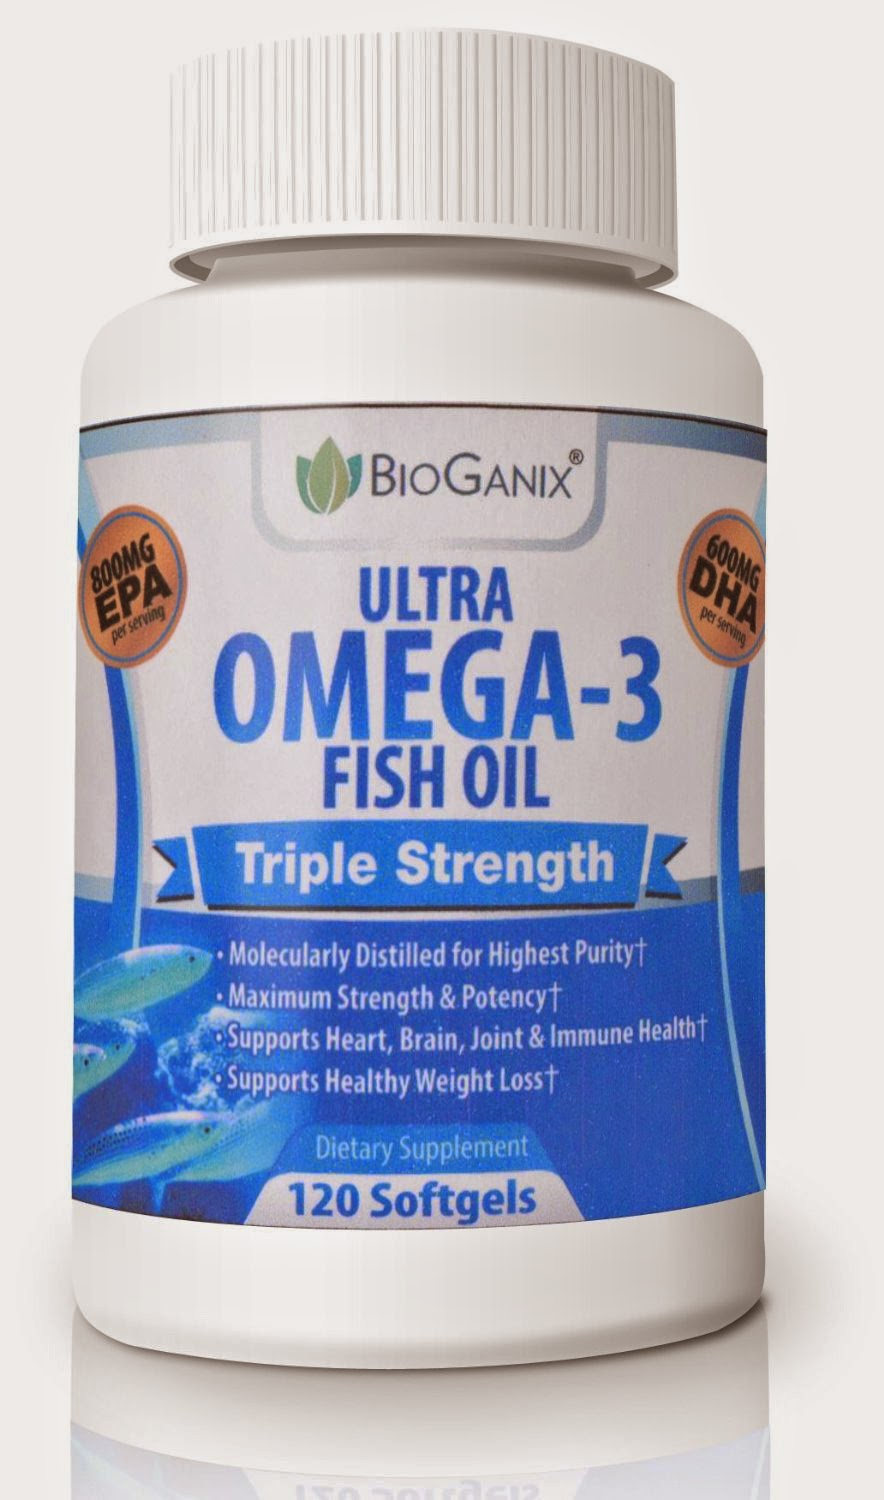 Popular product reviews by amy ultra omega 3 fish oil for Omega 3 fish oil reviews